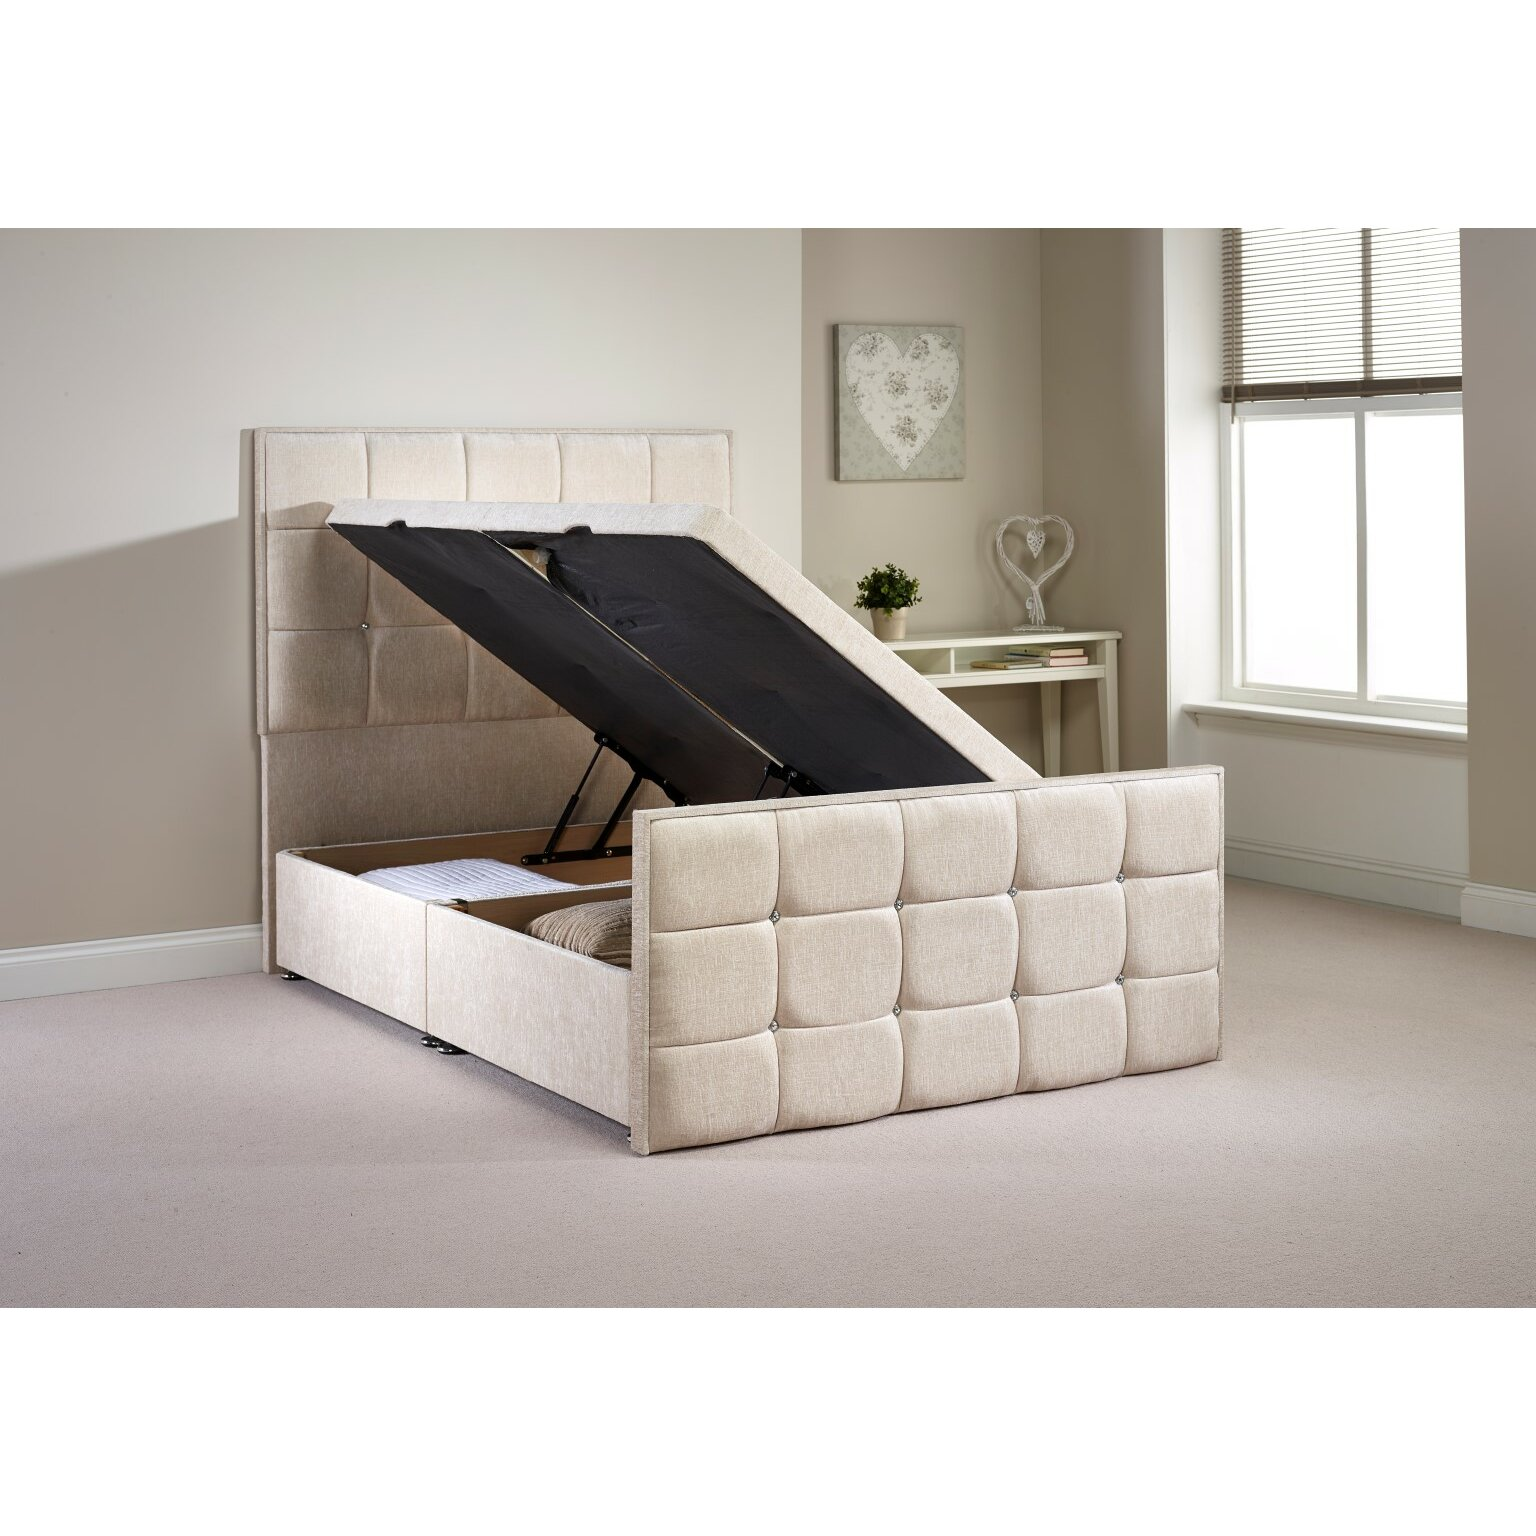 Home Haus Carrow Divan Base Wayfair Uk